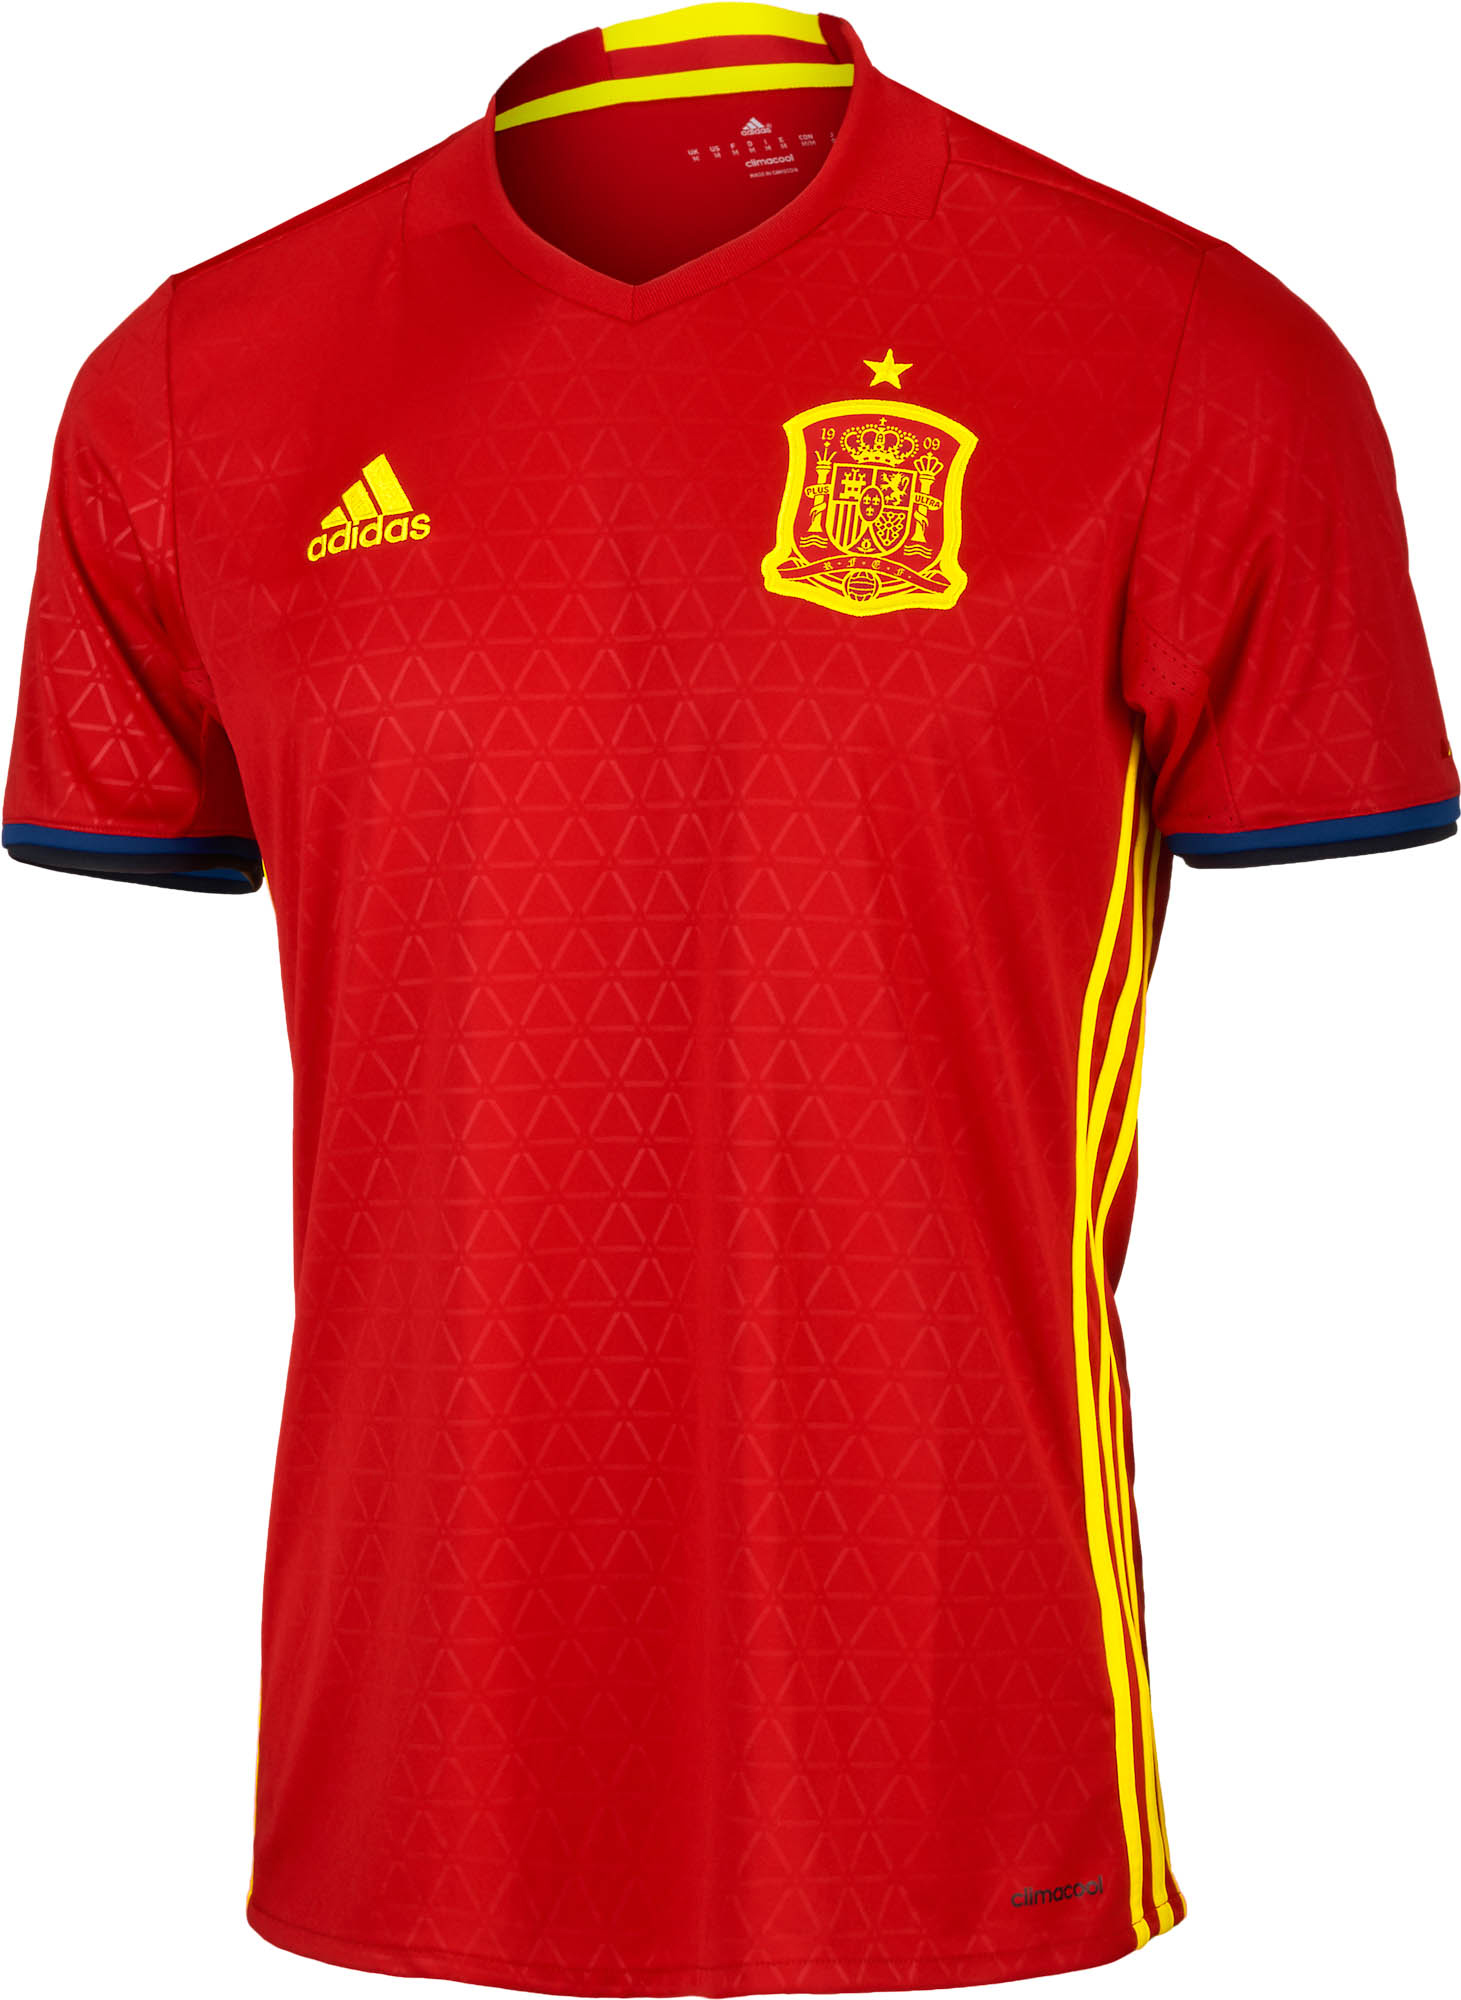 3b09059a430 adidas Spain Youth Home Jersey - 2016 Spain Soccer Jerseys